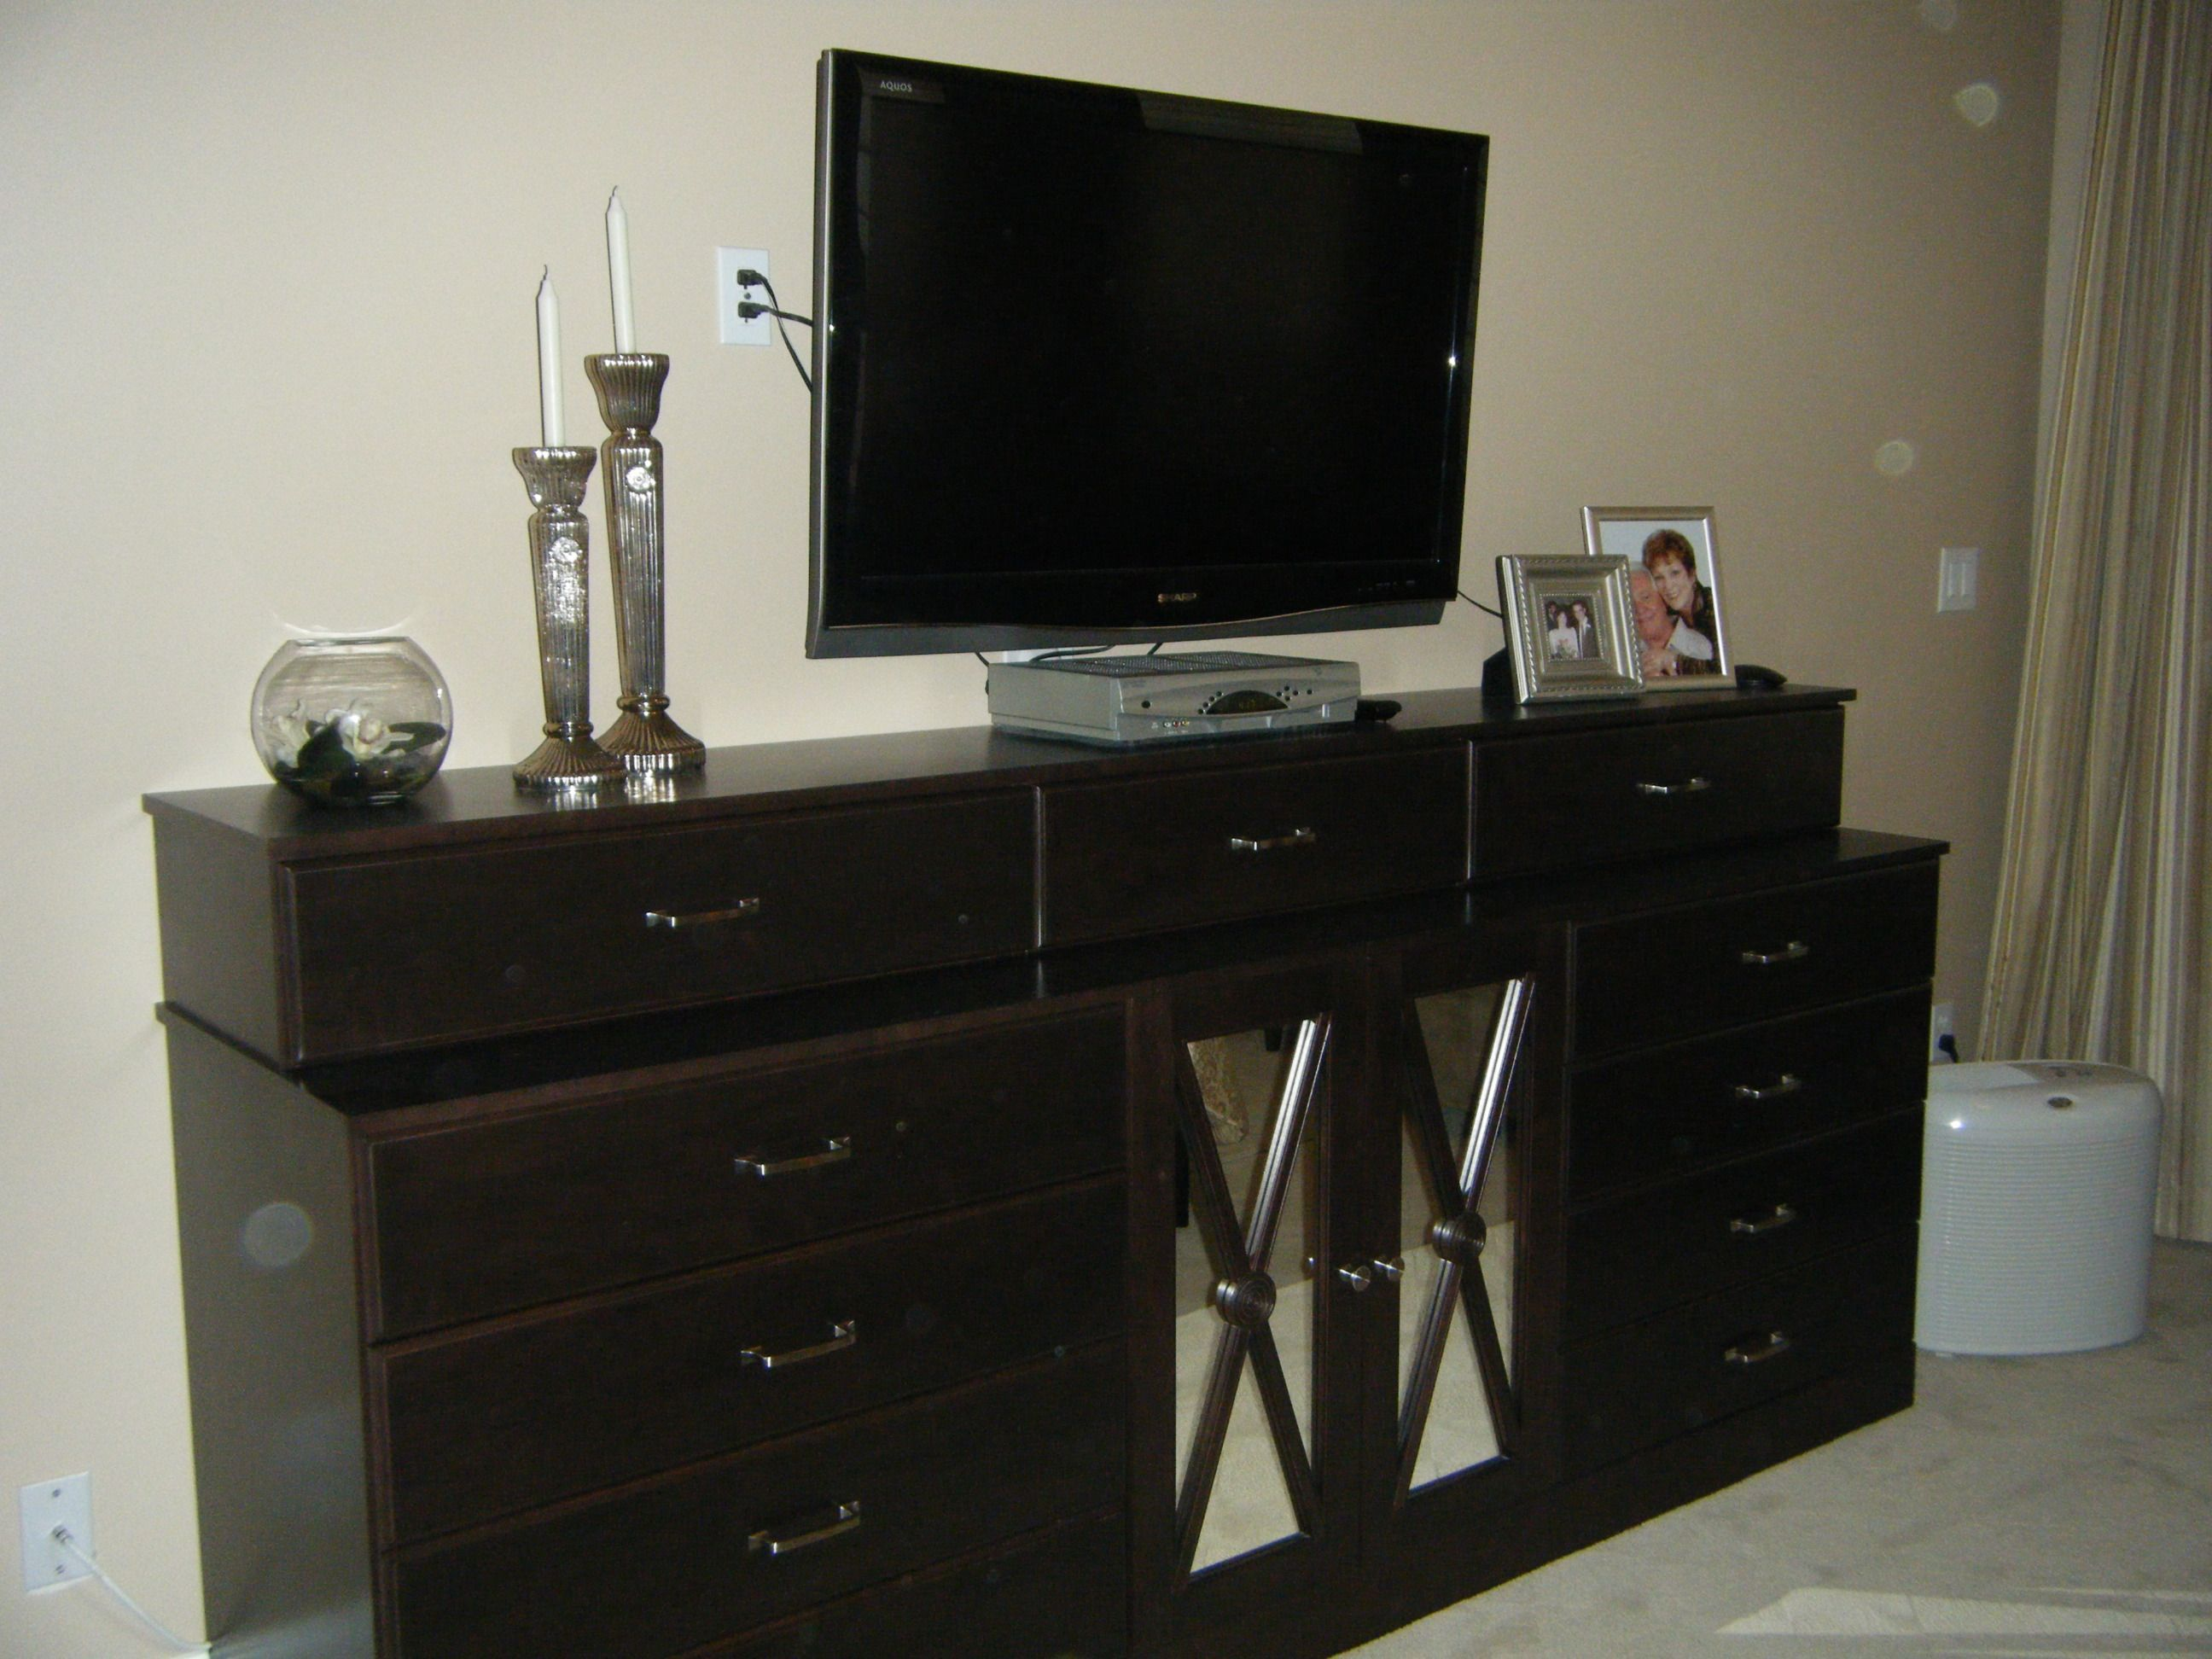 Creative And Modern Tv Wall Mount Ideas For Your Room How To Hide Wiring Mounted Bedroom Wires